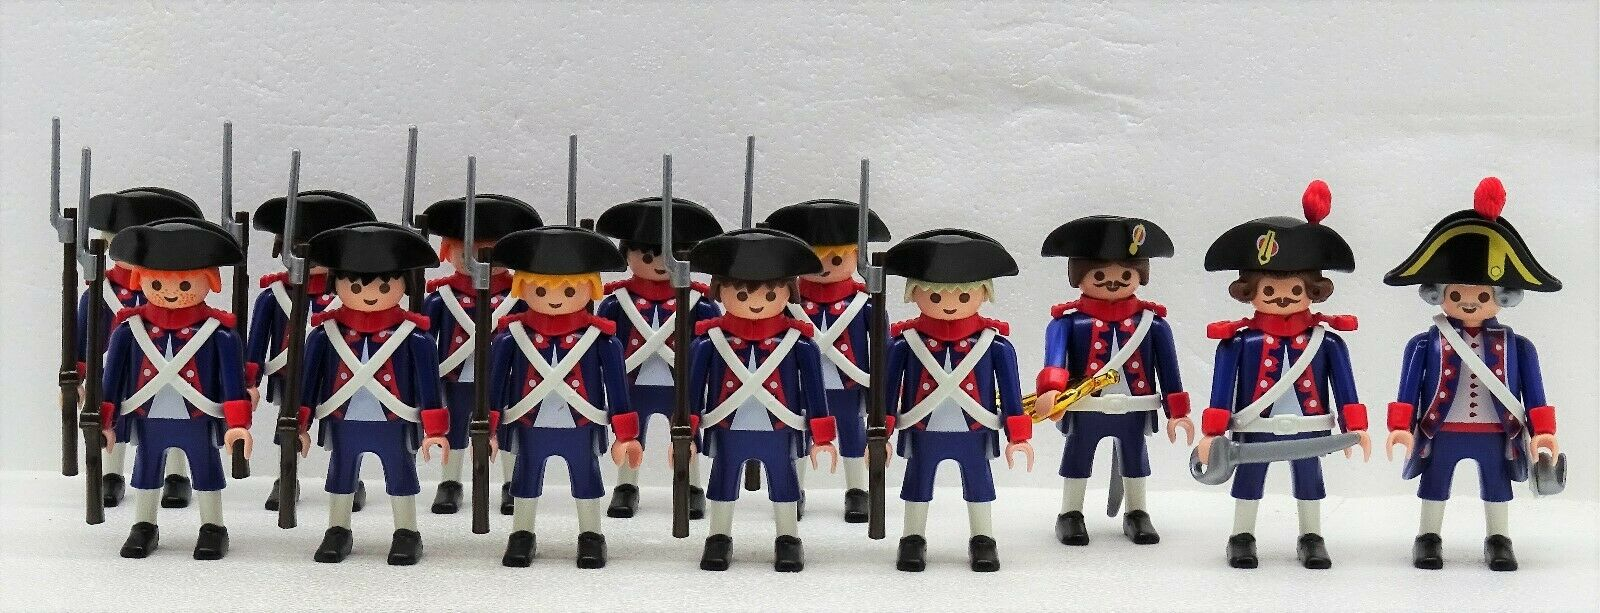 13 Français soldats playmobil à  Garde Super Set 3-Napoléon Sangle croisée RAR  magasin vente sortie